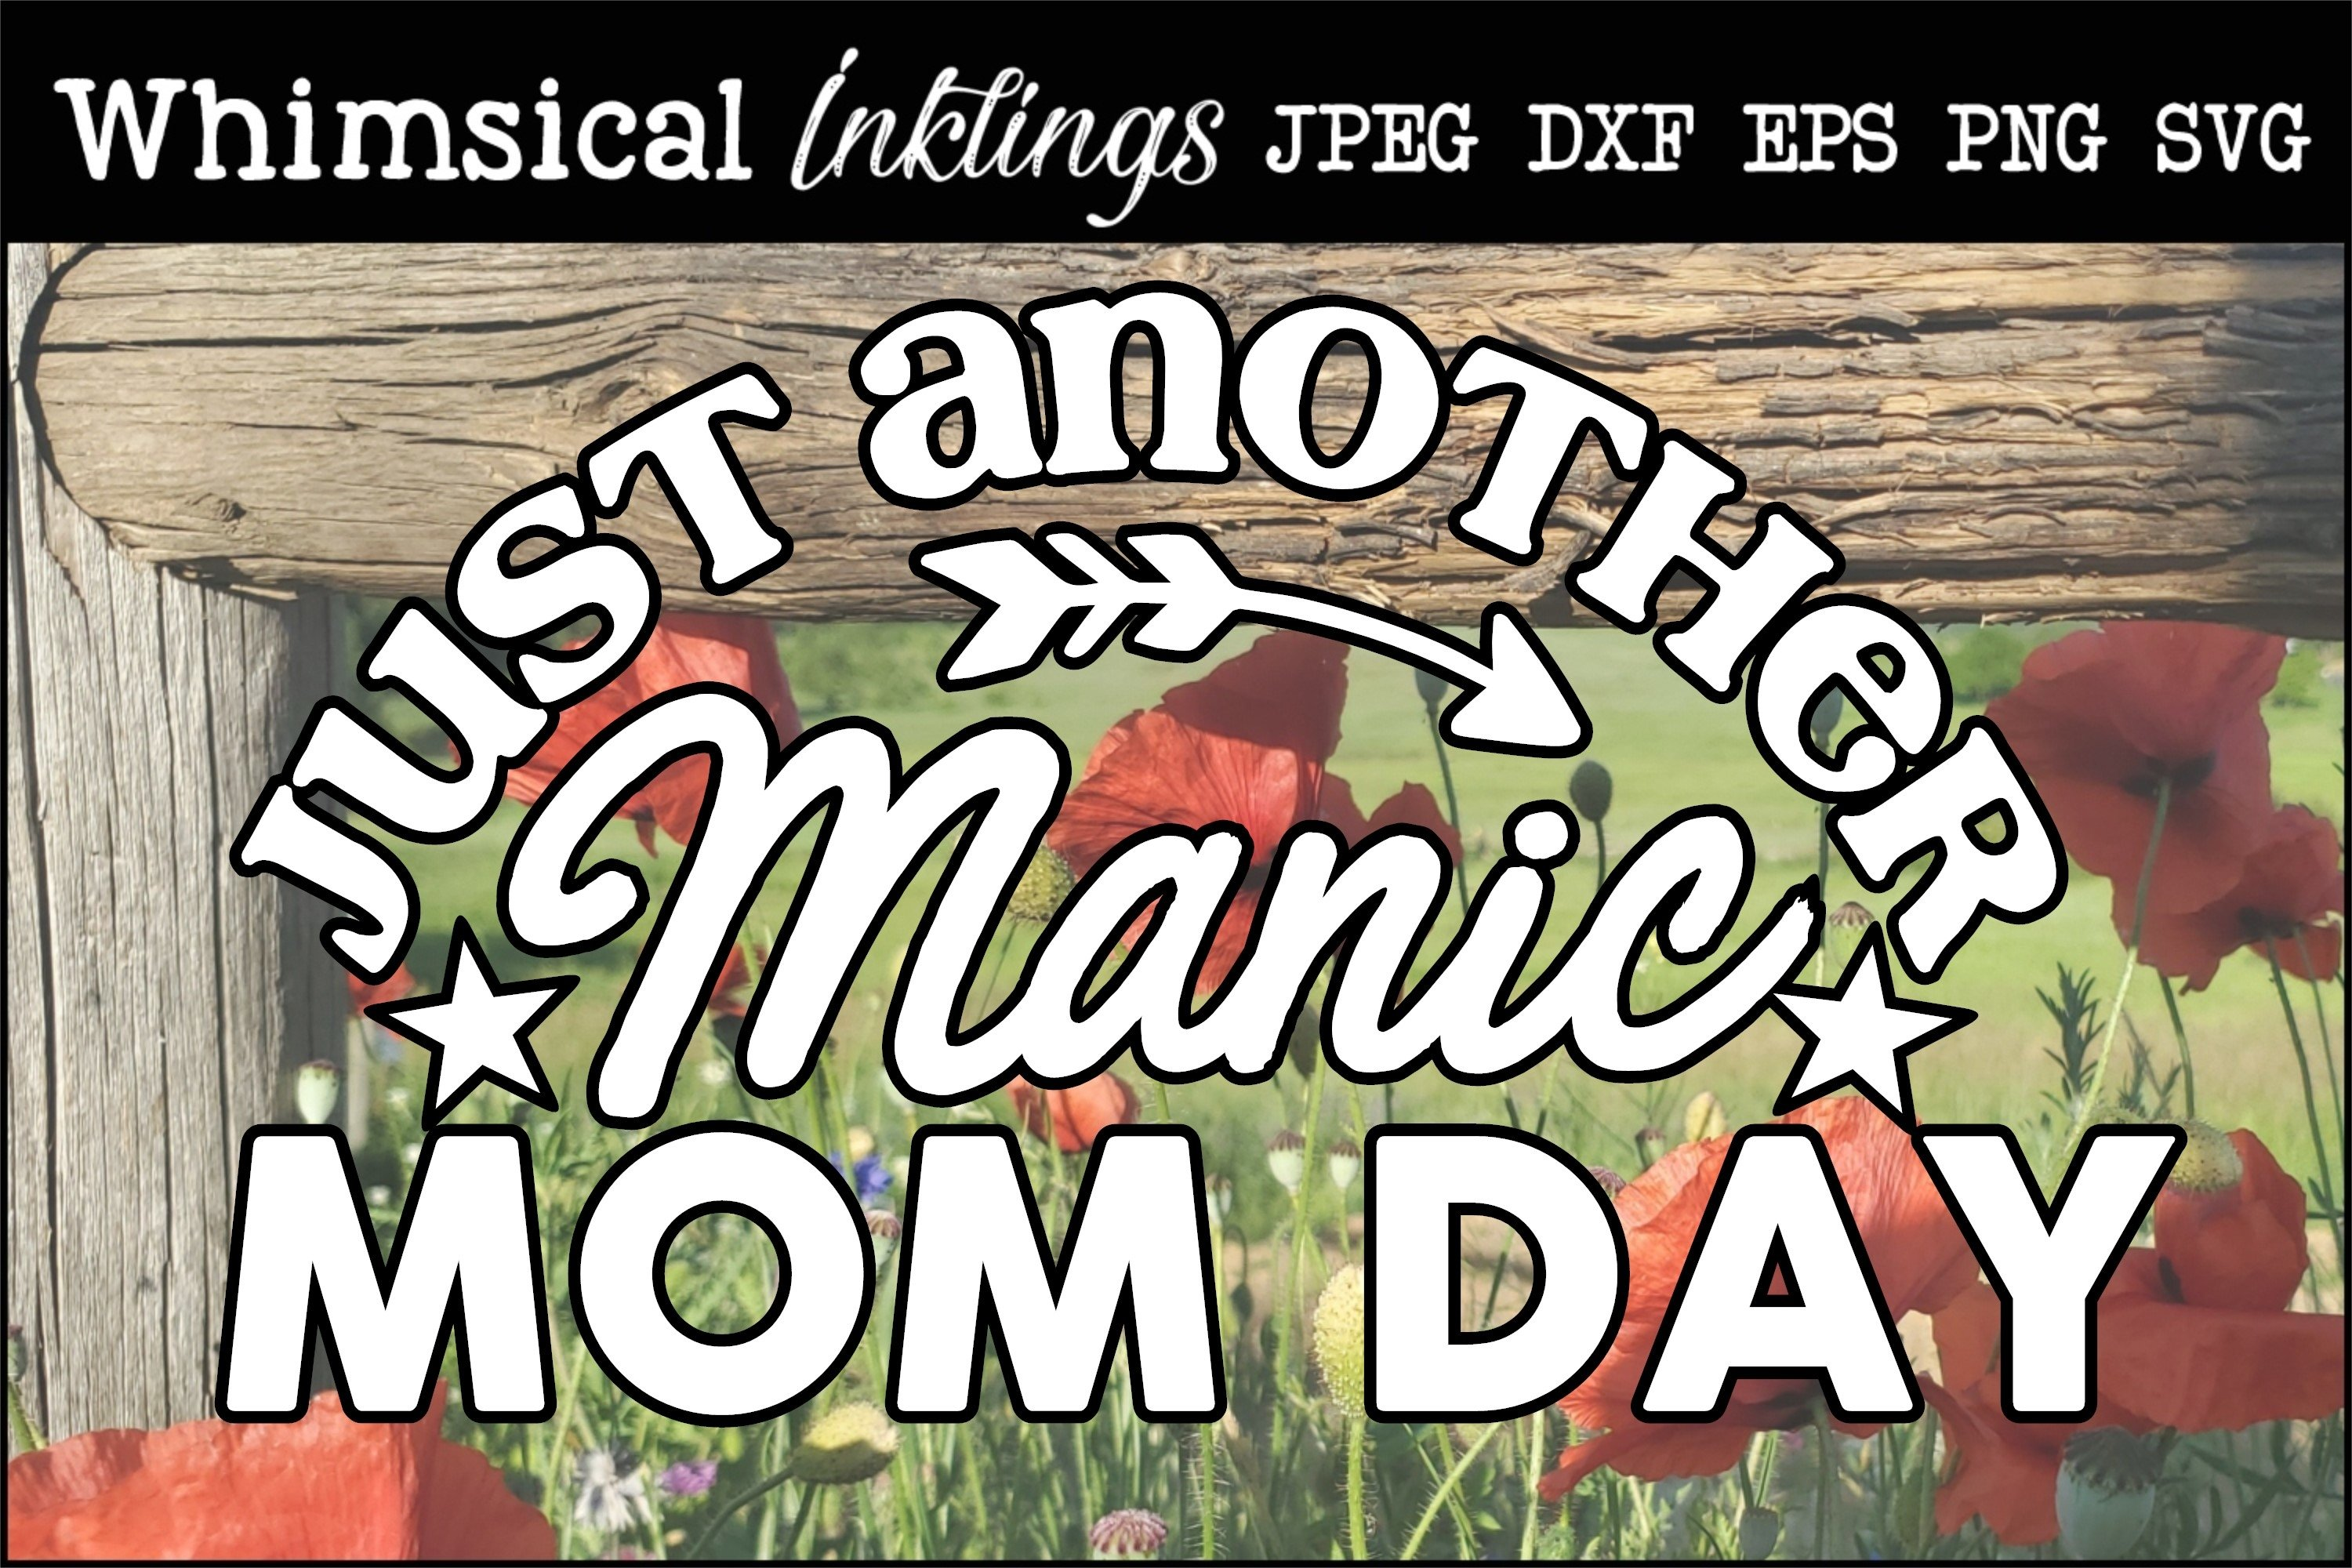 Just Another Manic Mom Day SVG example image 1